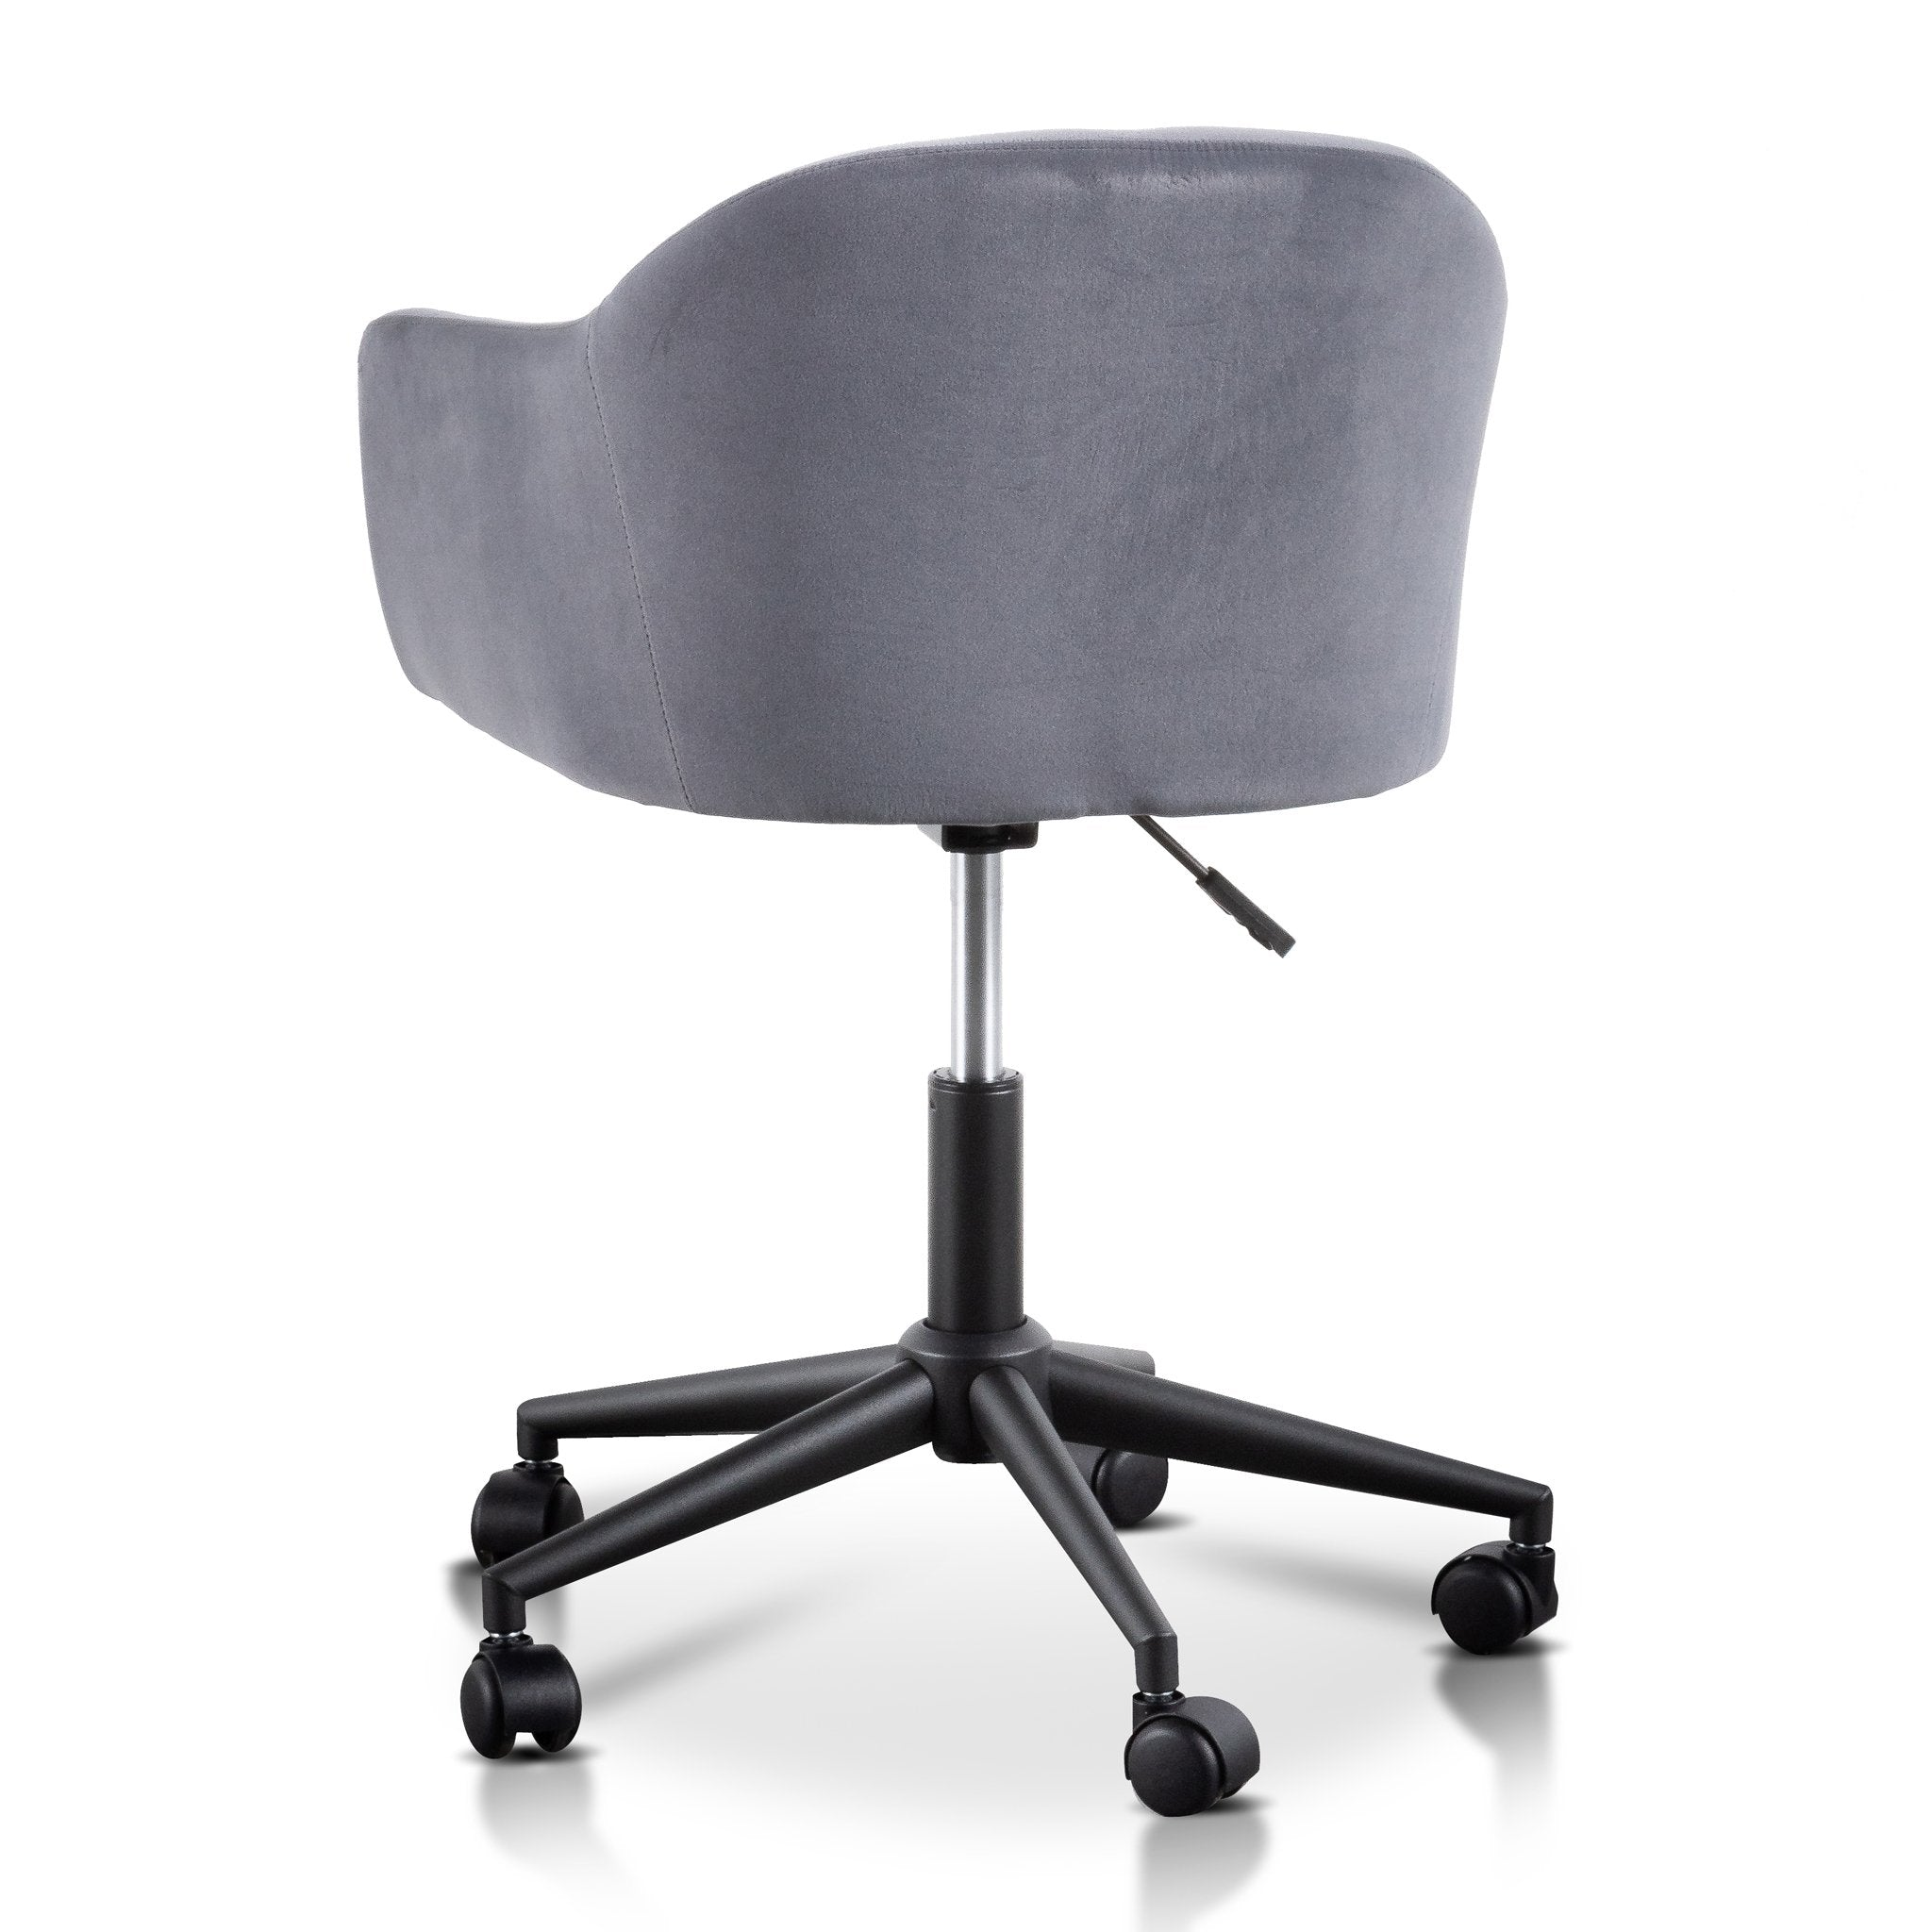 Lelle Charcoal Velvet office Chair - Black Base